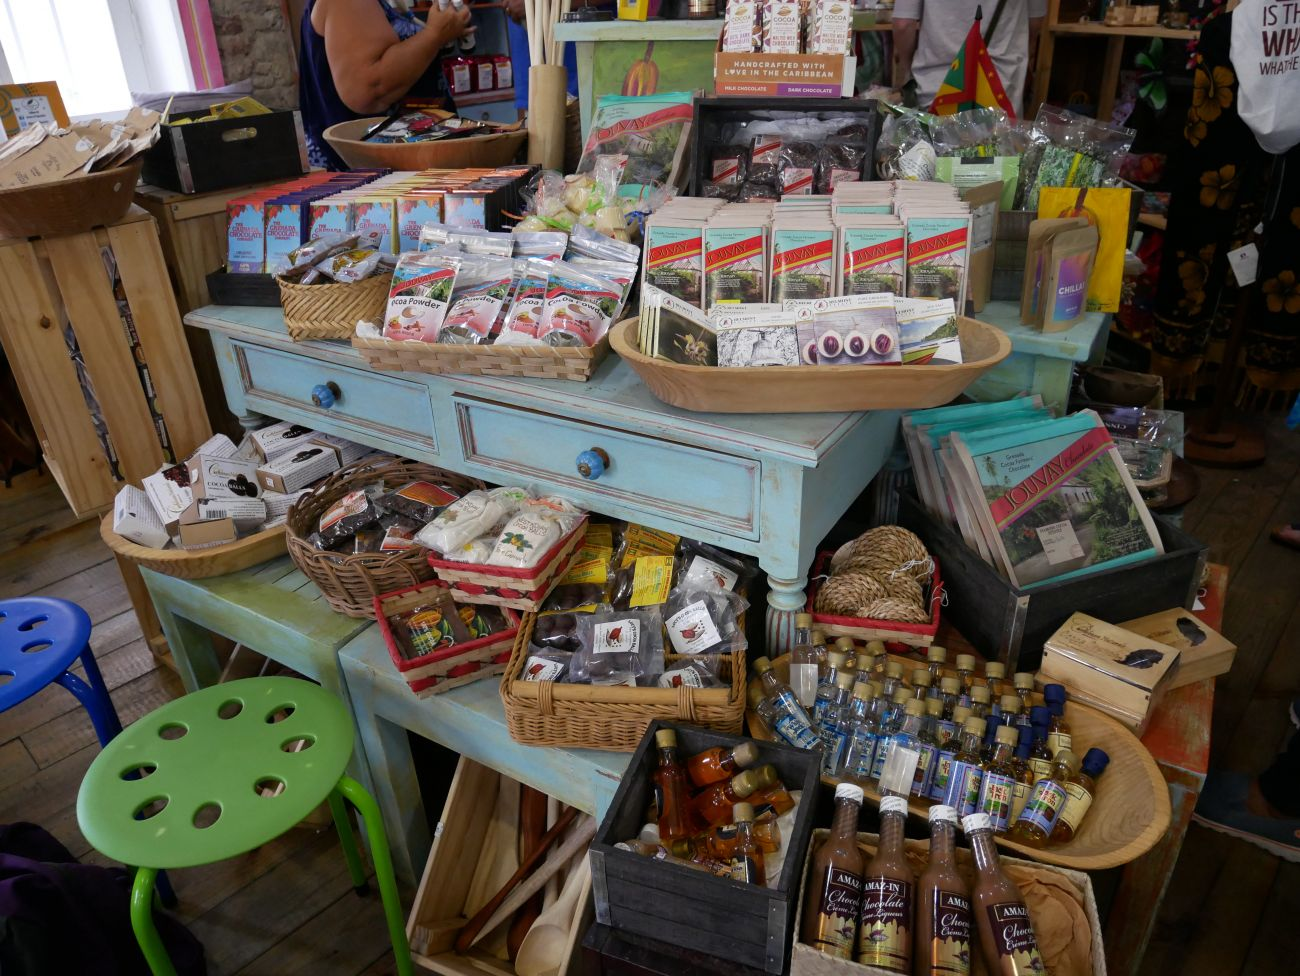 Chocolate-themed products and chocolate on display at House of Chocolate, Grenada